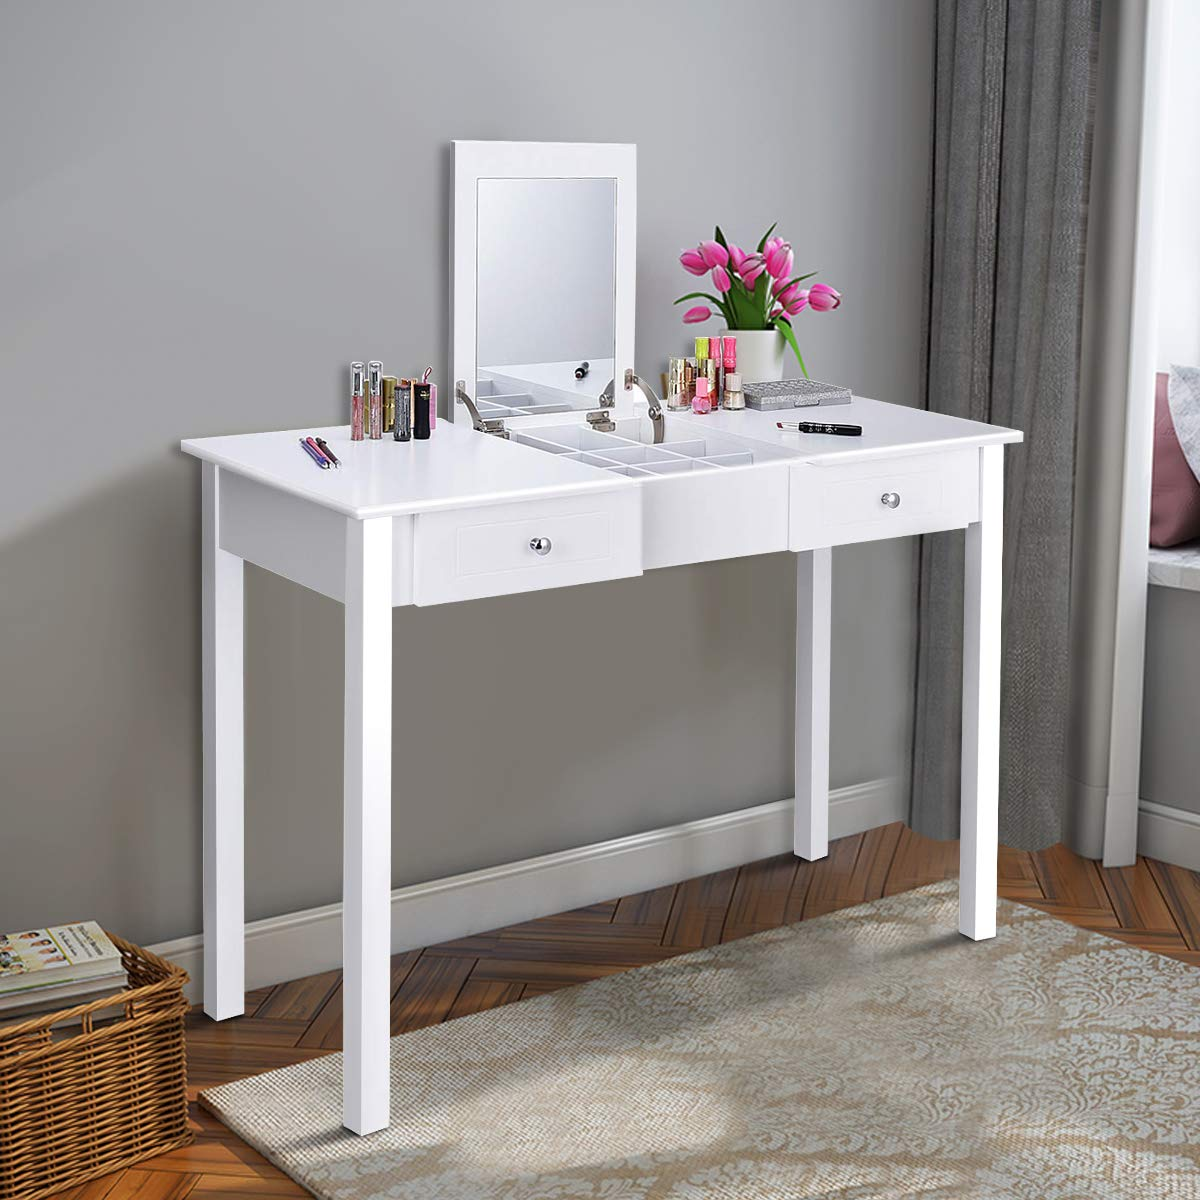 outlet store 1a787 6164c Giantex Vanity Table with Flip Top Mirror, Makeup Dressing Table Writing  Desk with 2 Drawers and Removable Organizer 9 Compartments, Bedroom Vanity  ...